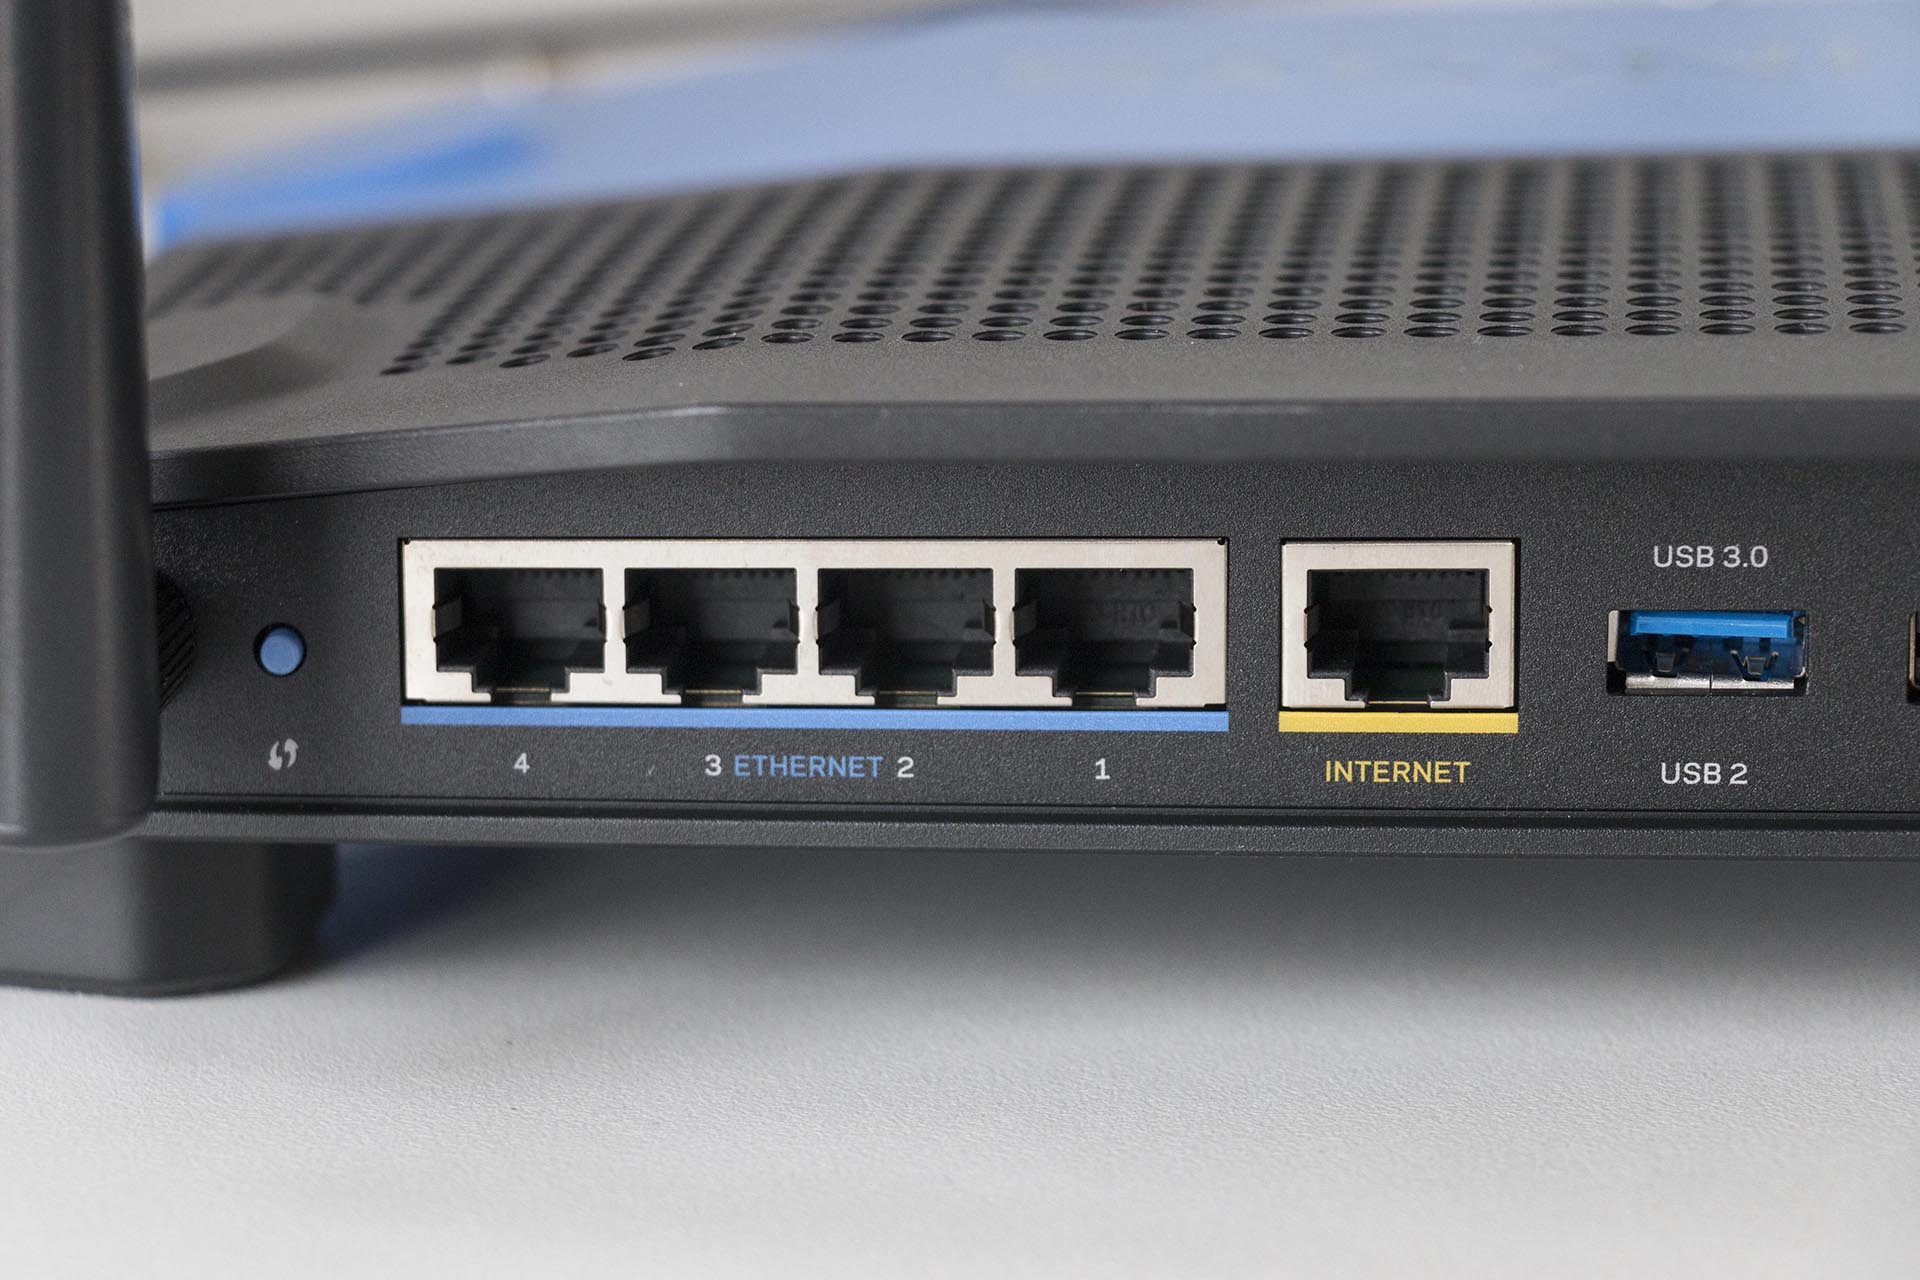 linksys-wrt1900acs_mg_2689